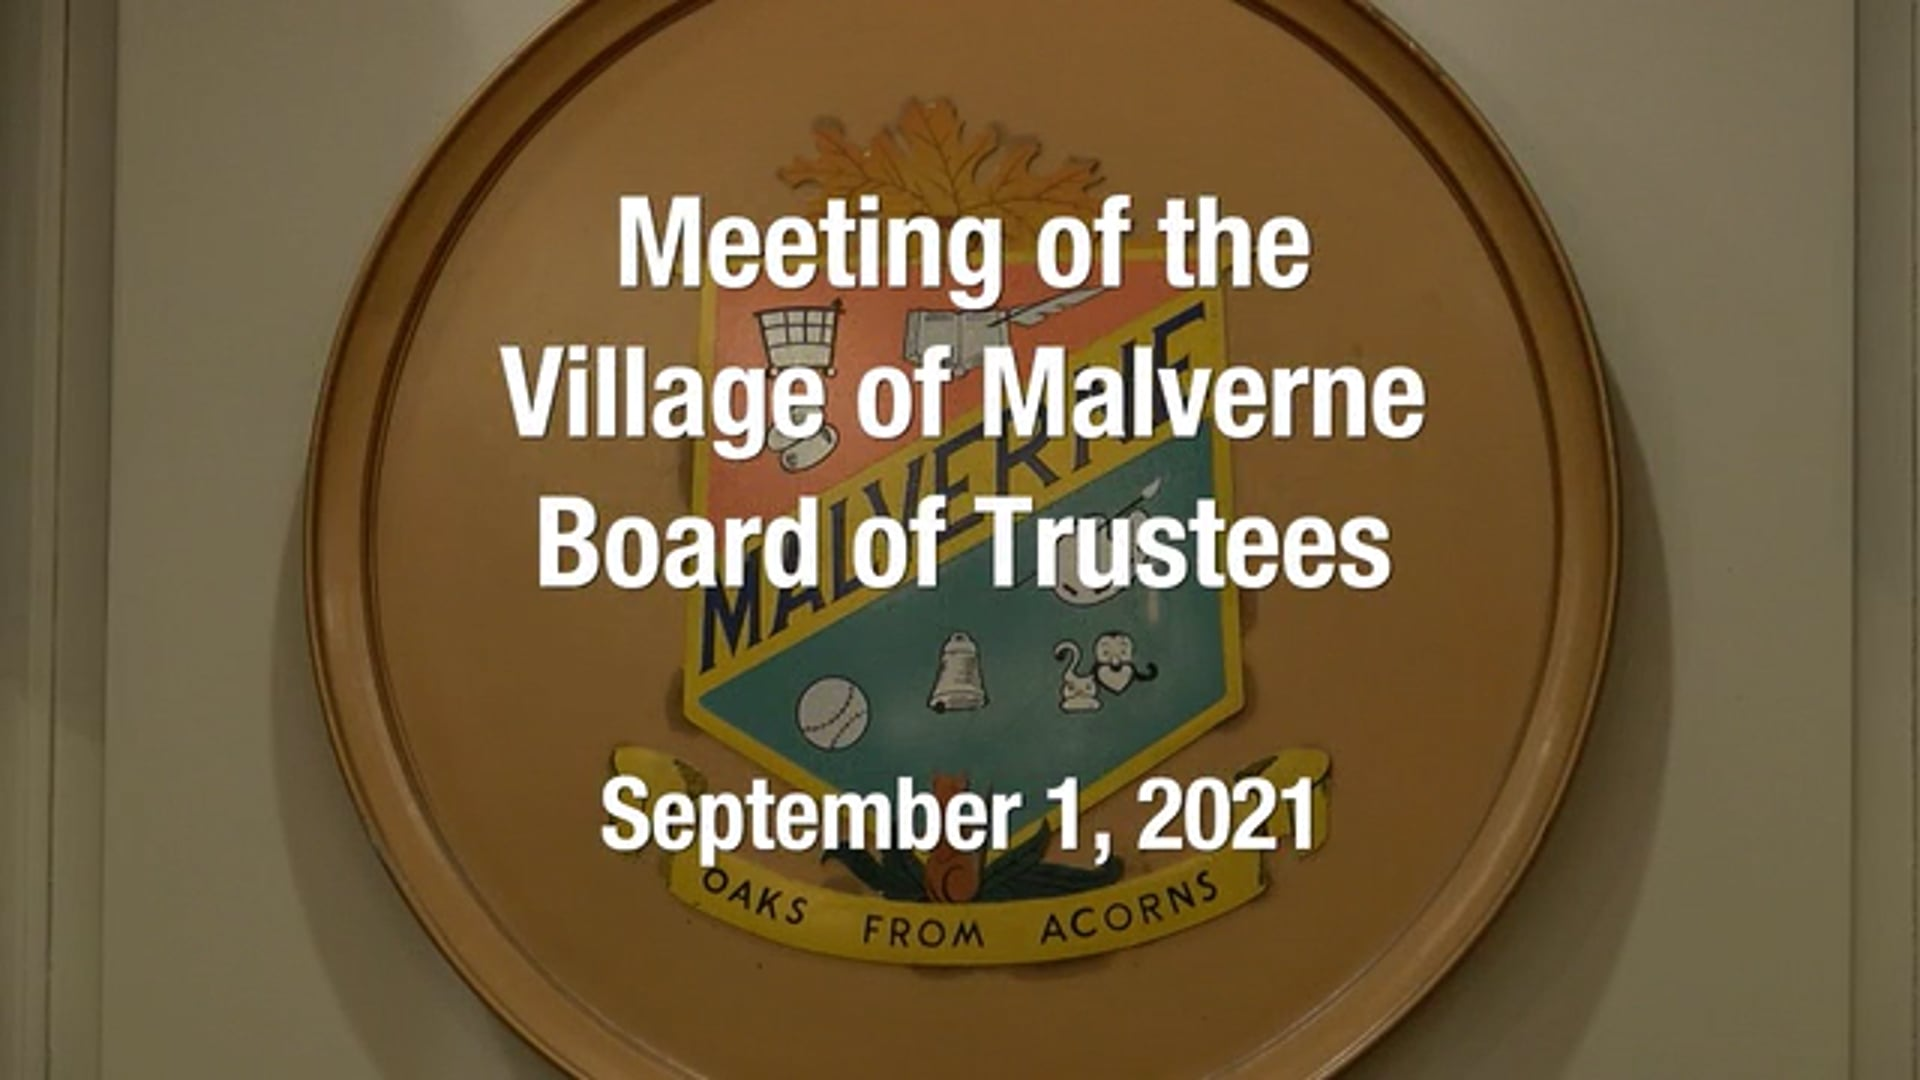 Village of Malverne - Meeting of the Board of Trustees -  September 1, 2021